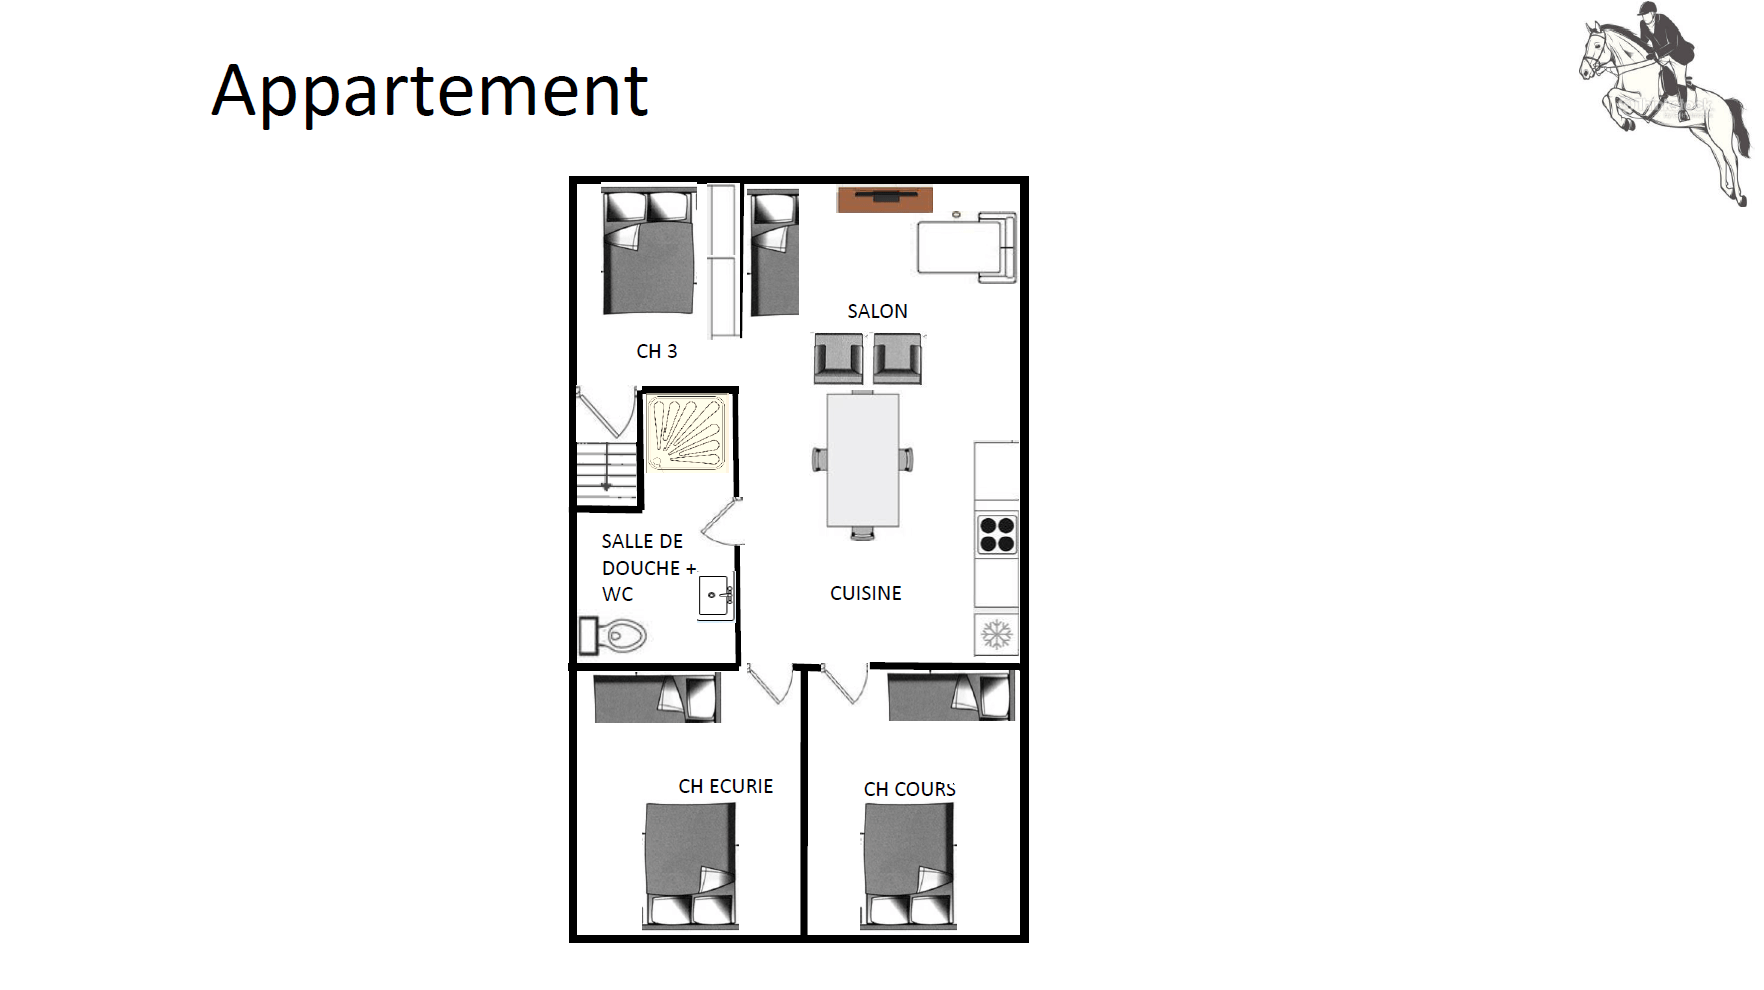 Plan-Les-ecuries-valdemai-appartement2